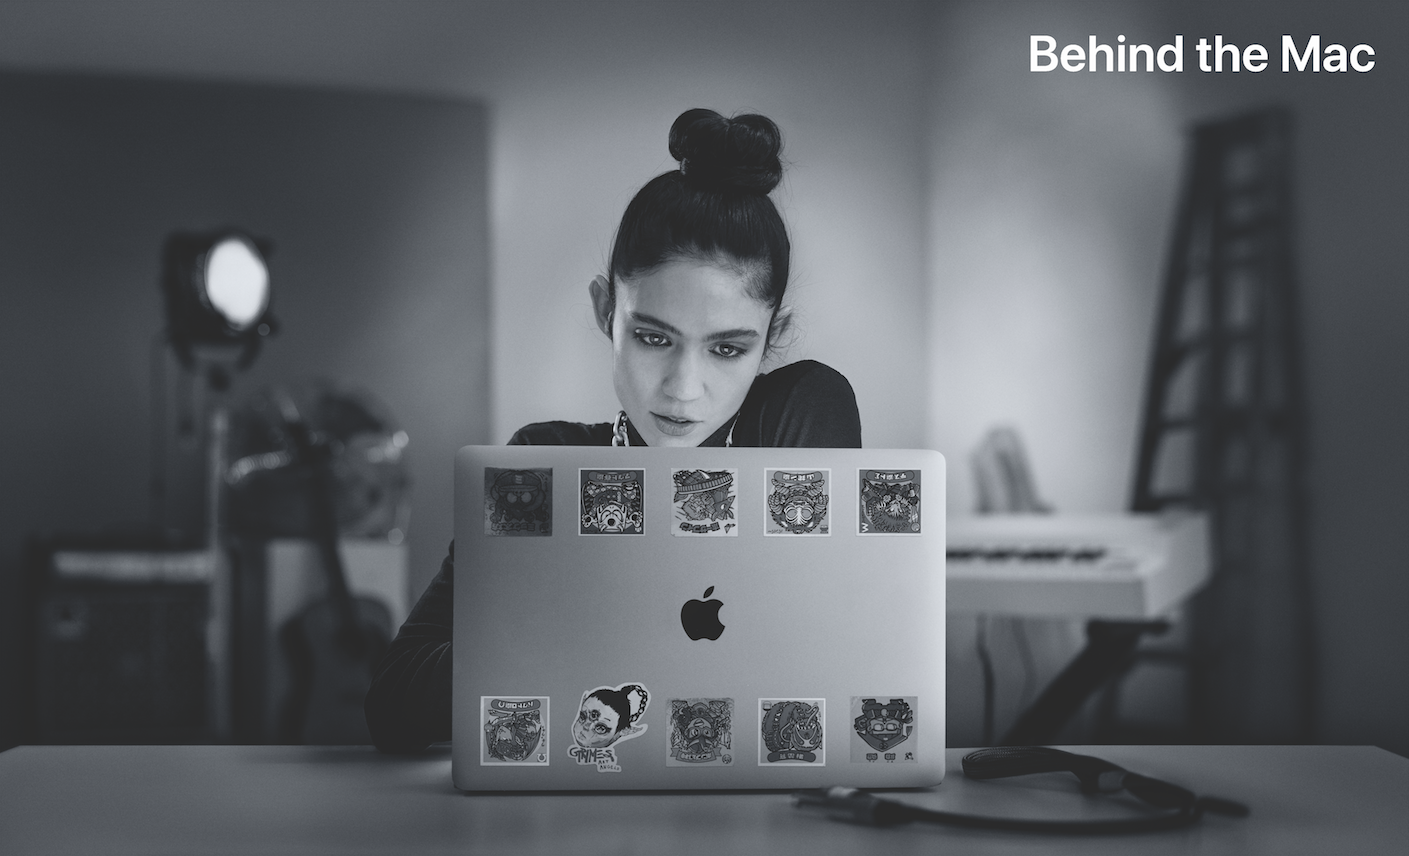 Image Media for Behind the Mac